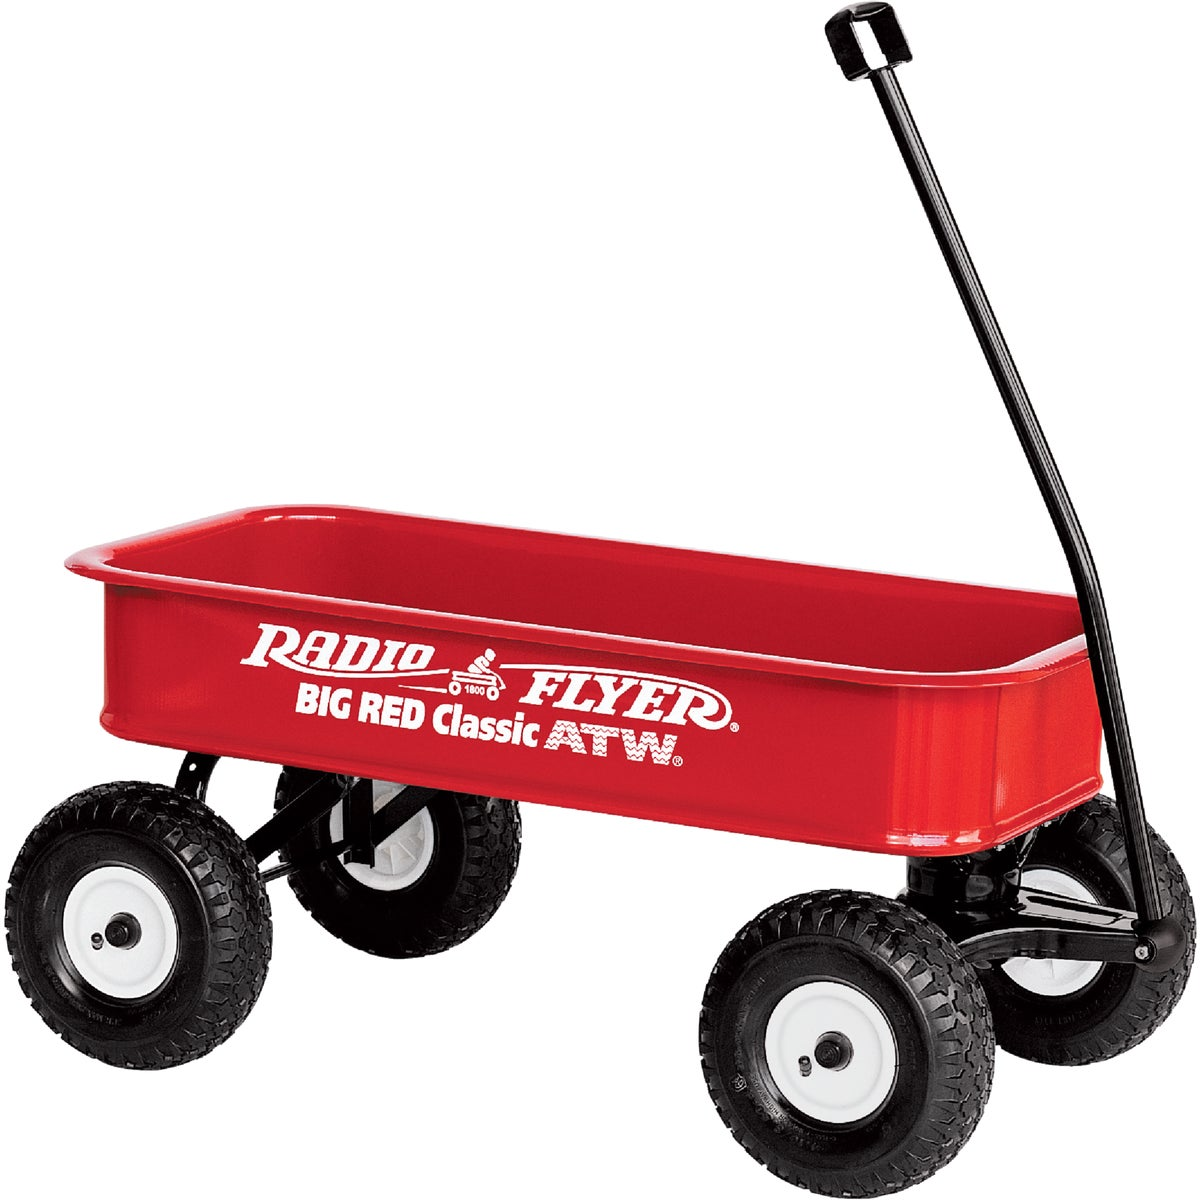 BIG RED ATW WAGON - 1800 by Radio Flyer Shanghai